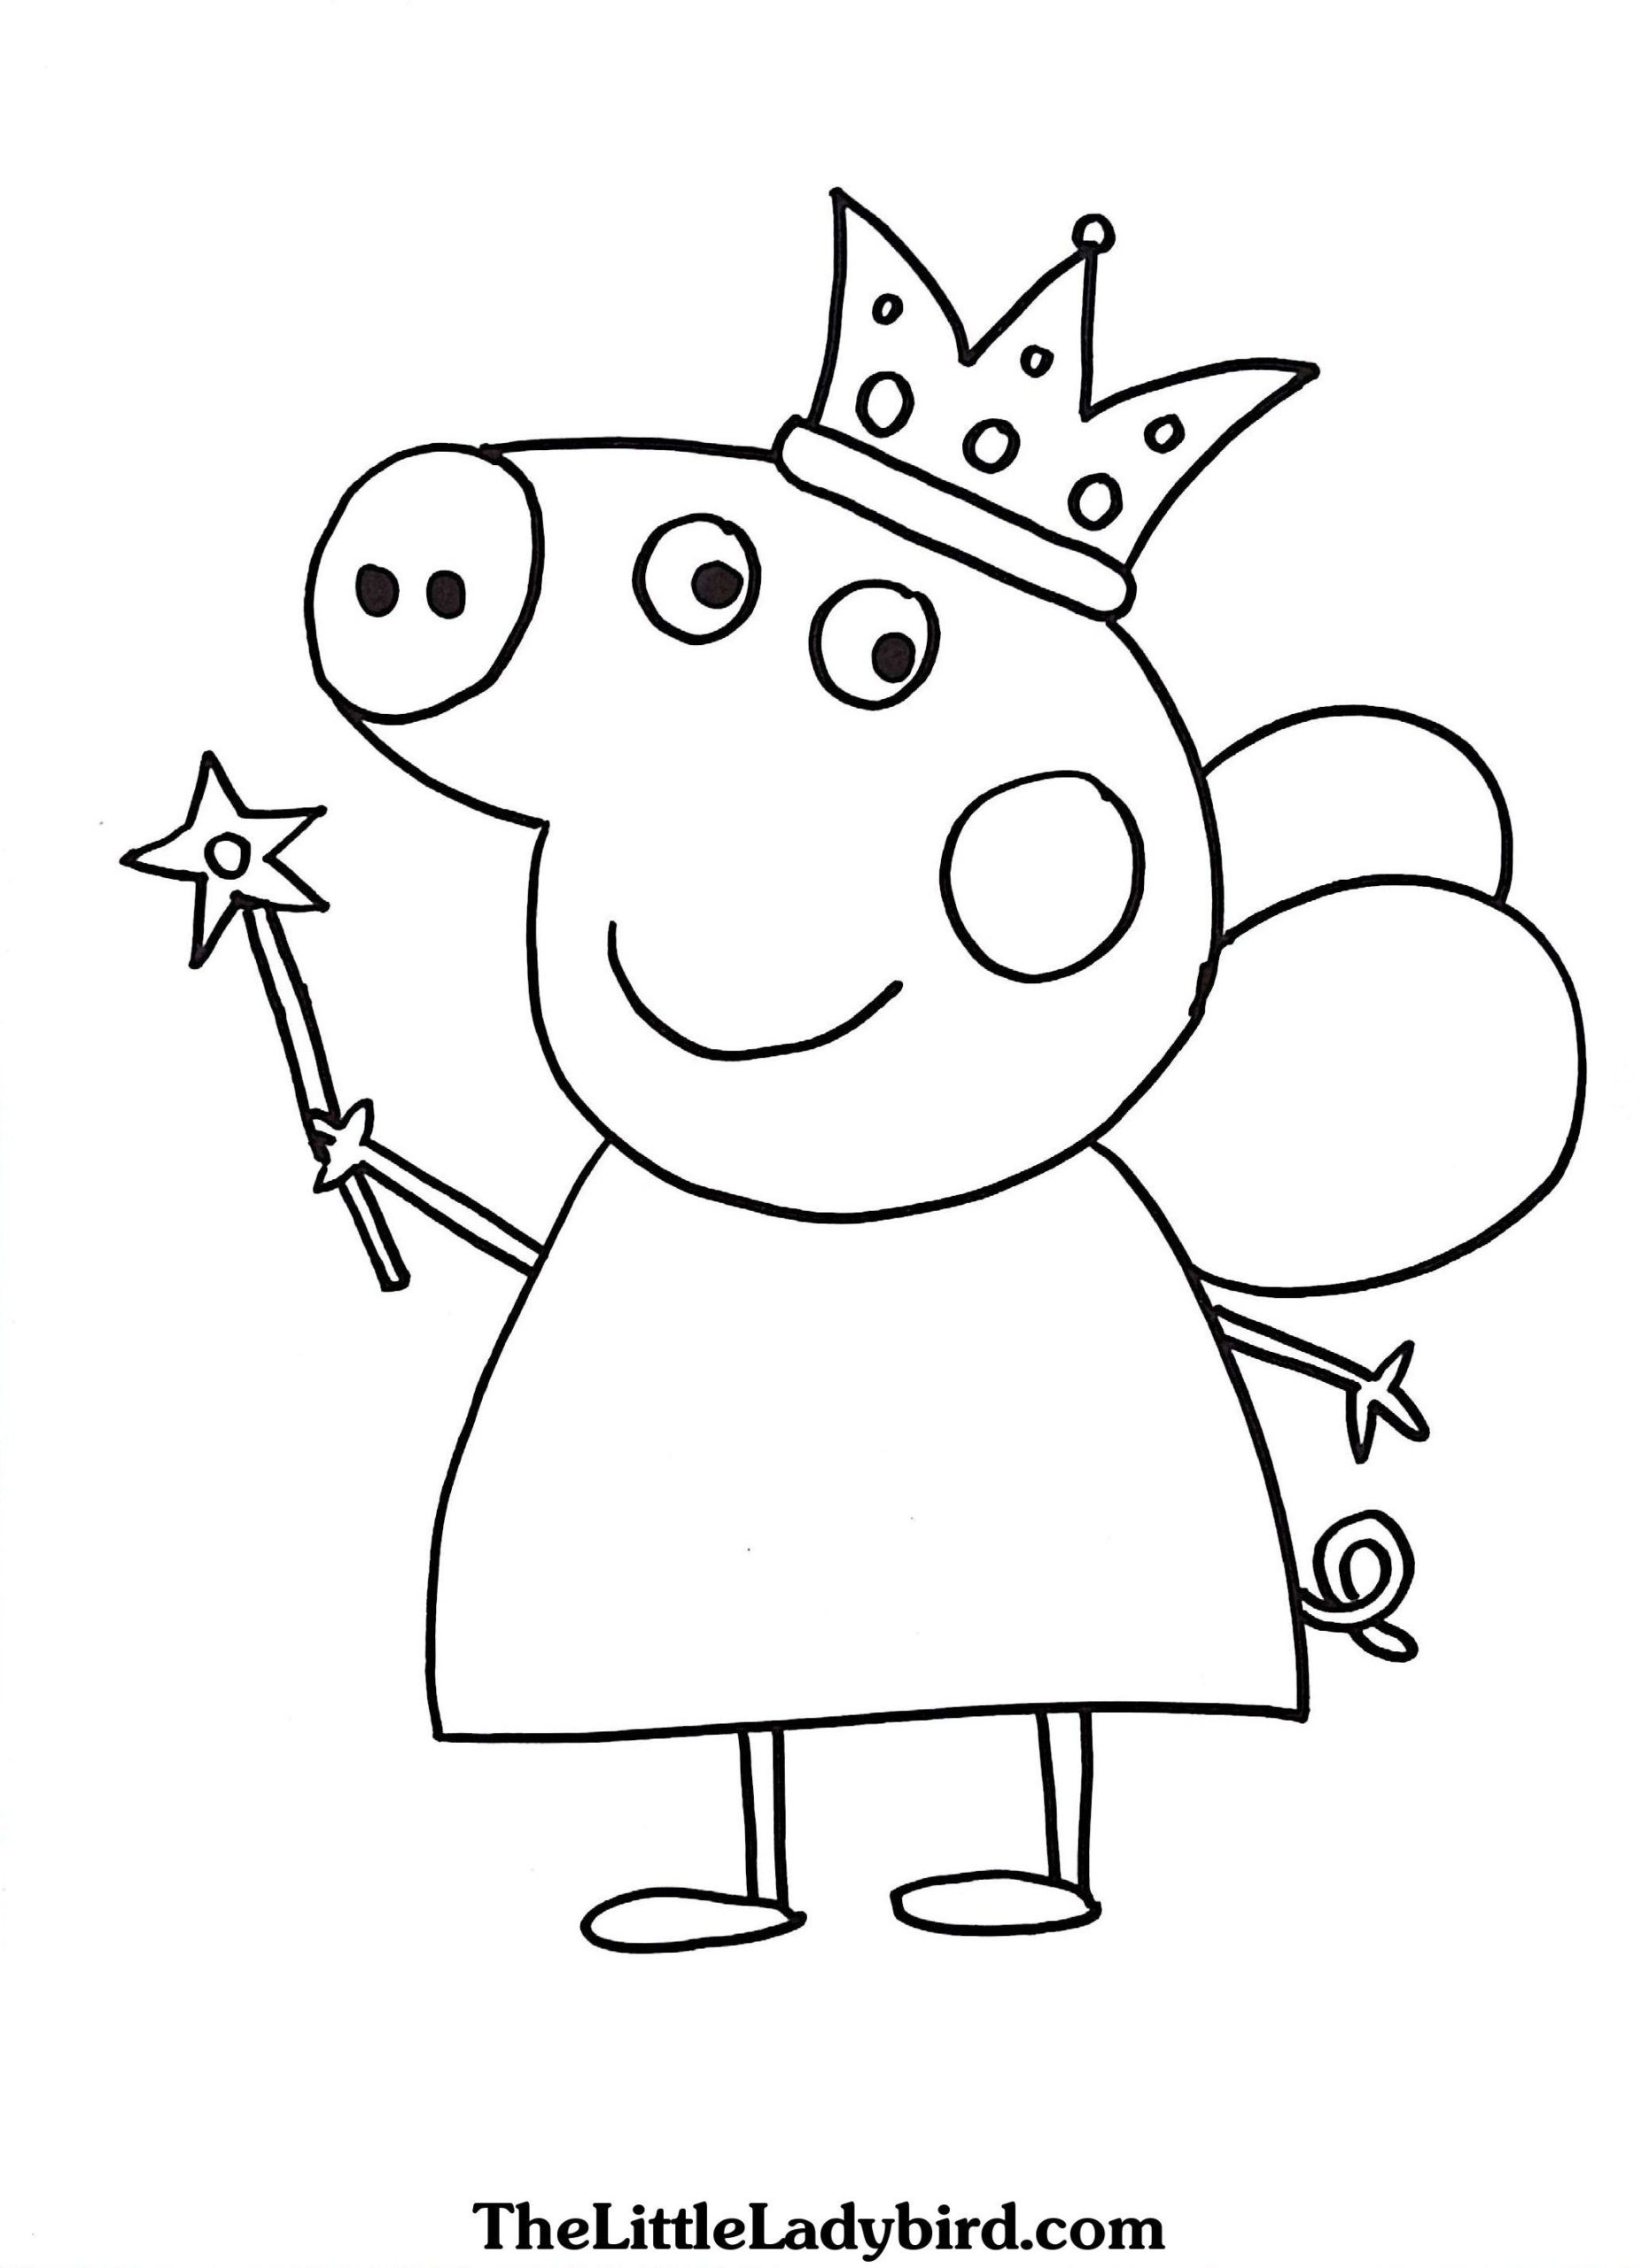 Coloring Pages : Peppa Pig Valentines Coloring From The pour Peppa Pig A Colorier